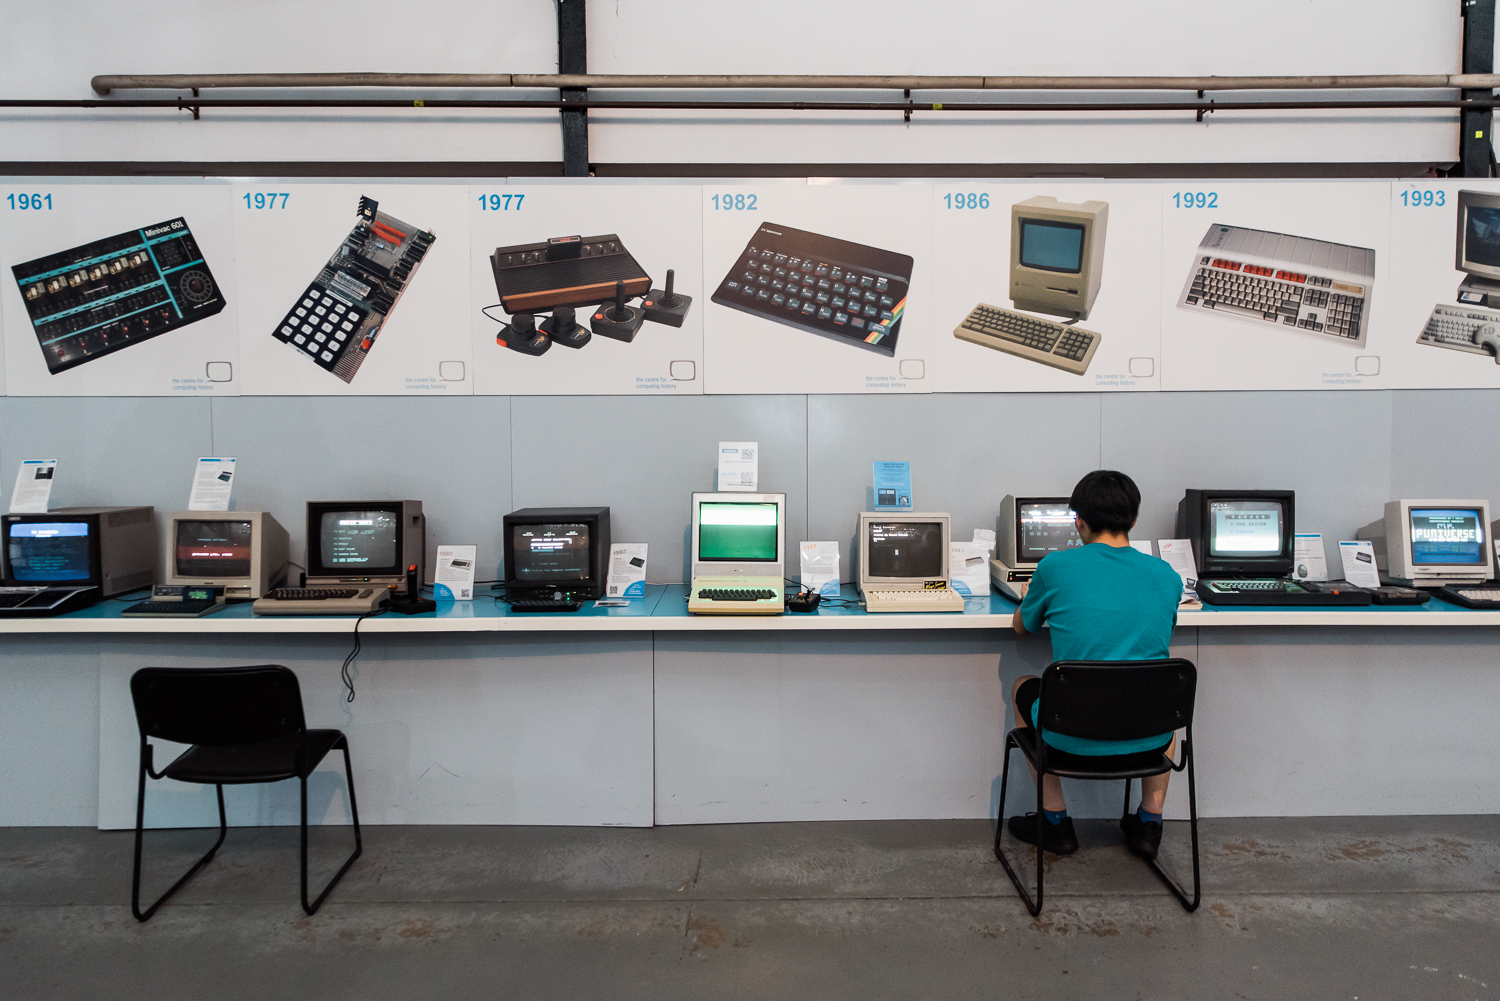 Computers in the Museum of Computing History